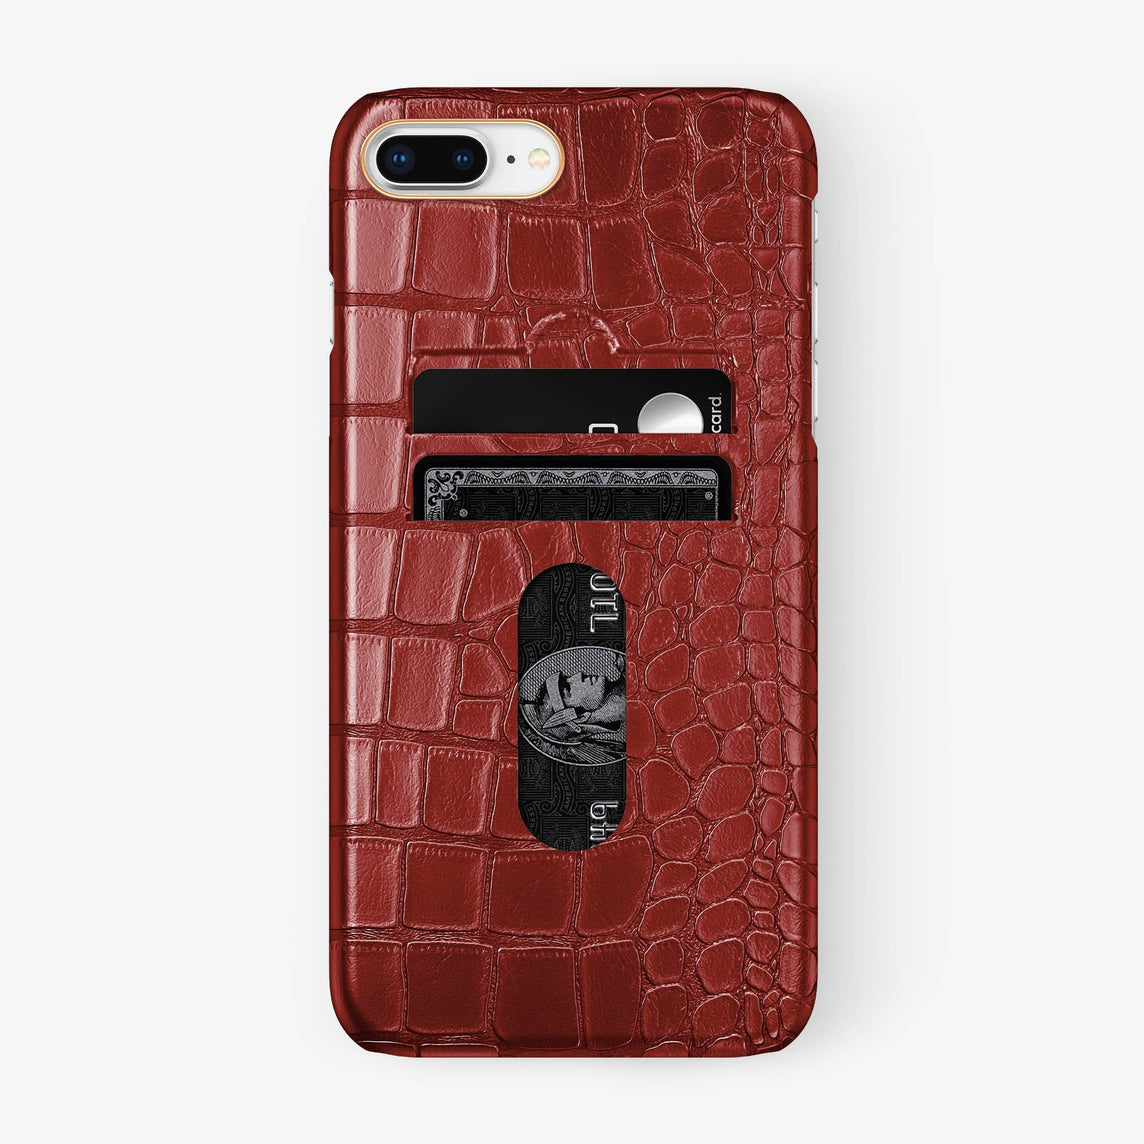 Alligator Card Holder Case iPhone 7/8 Plus | Red - Rose Gold